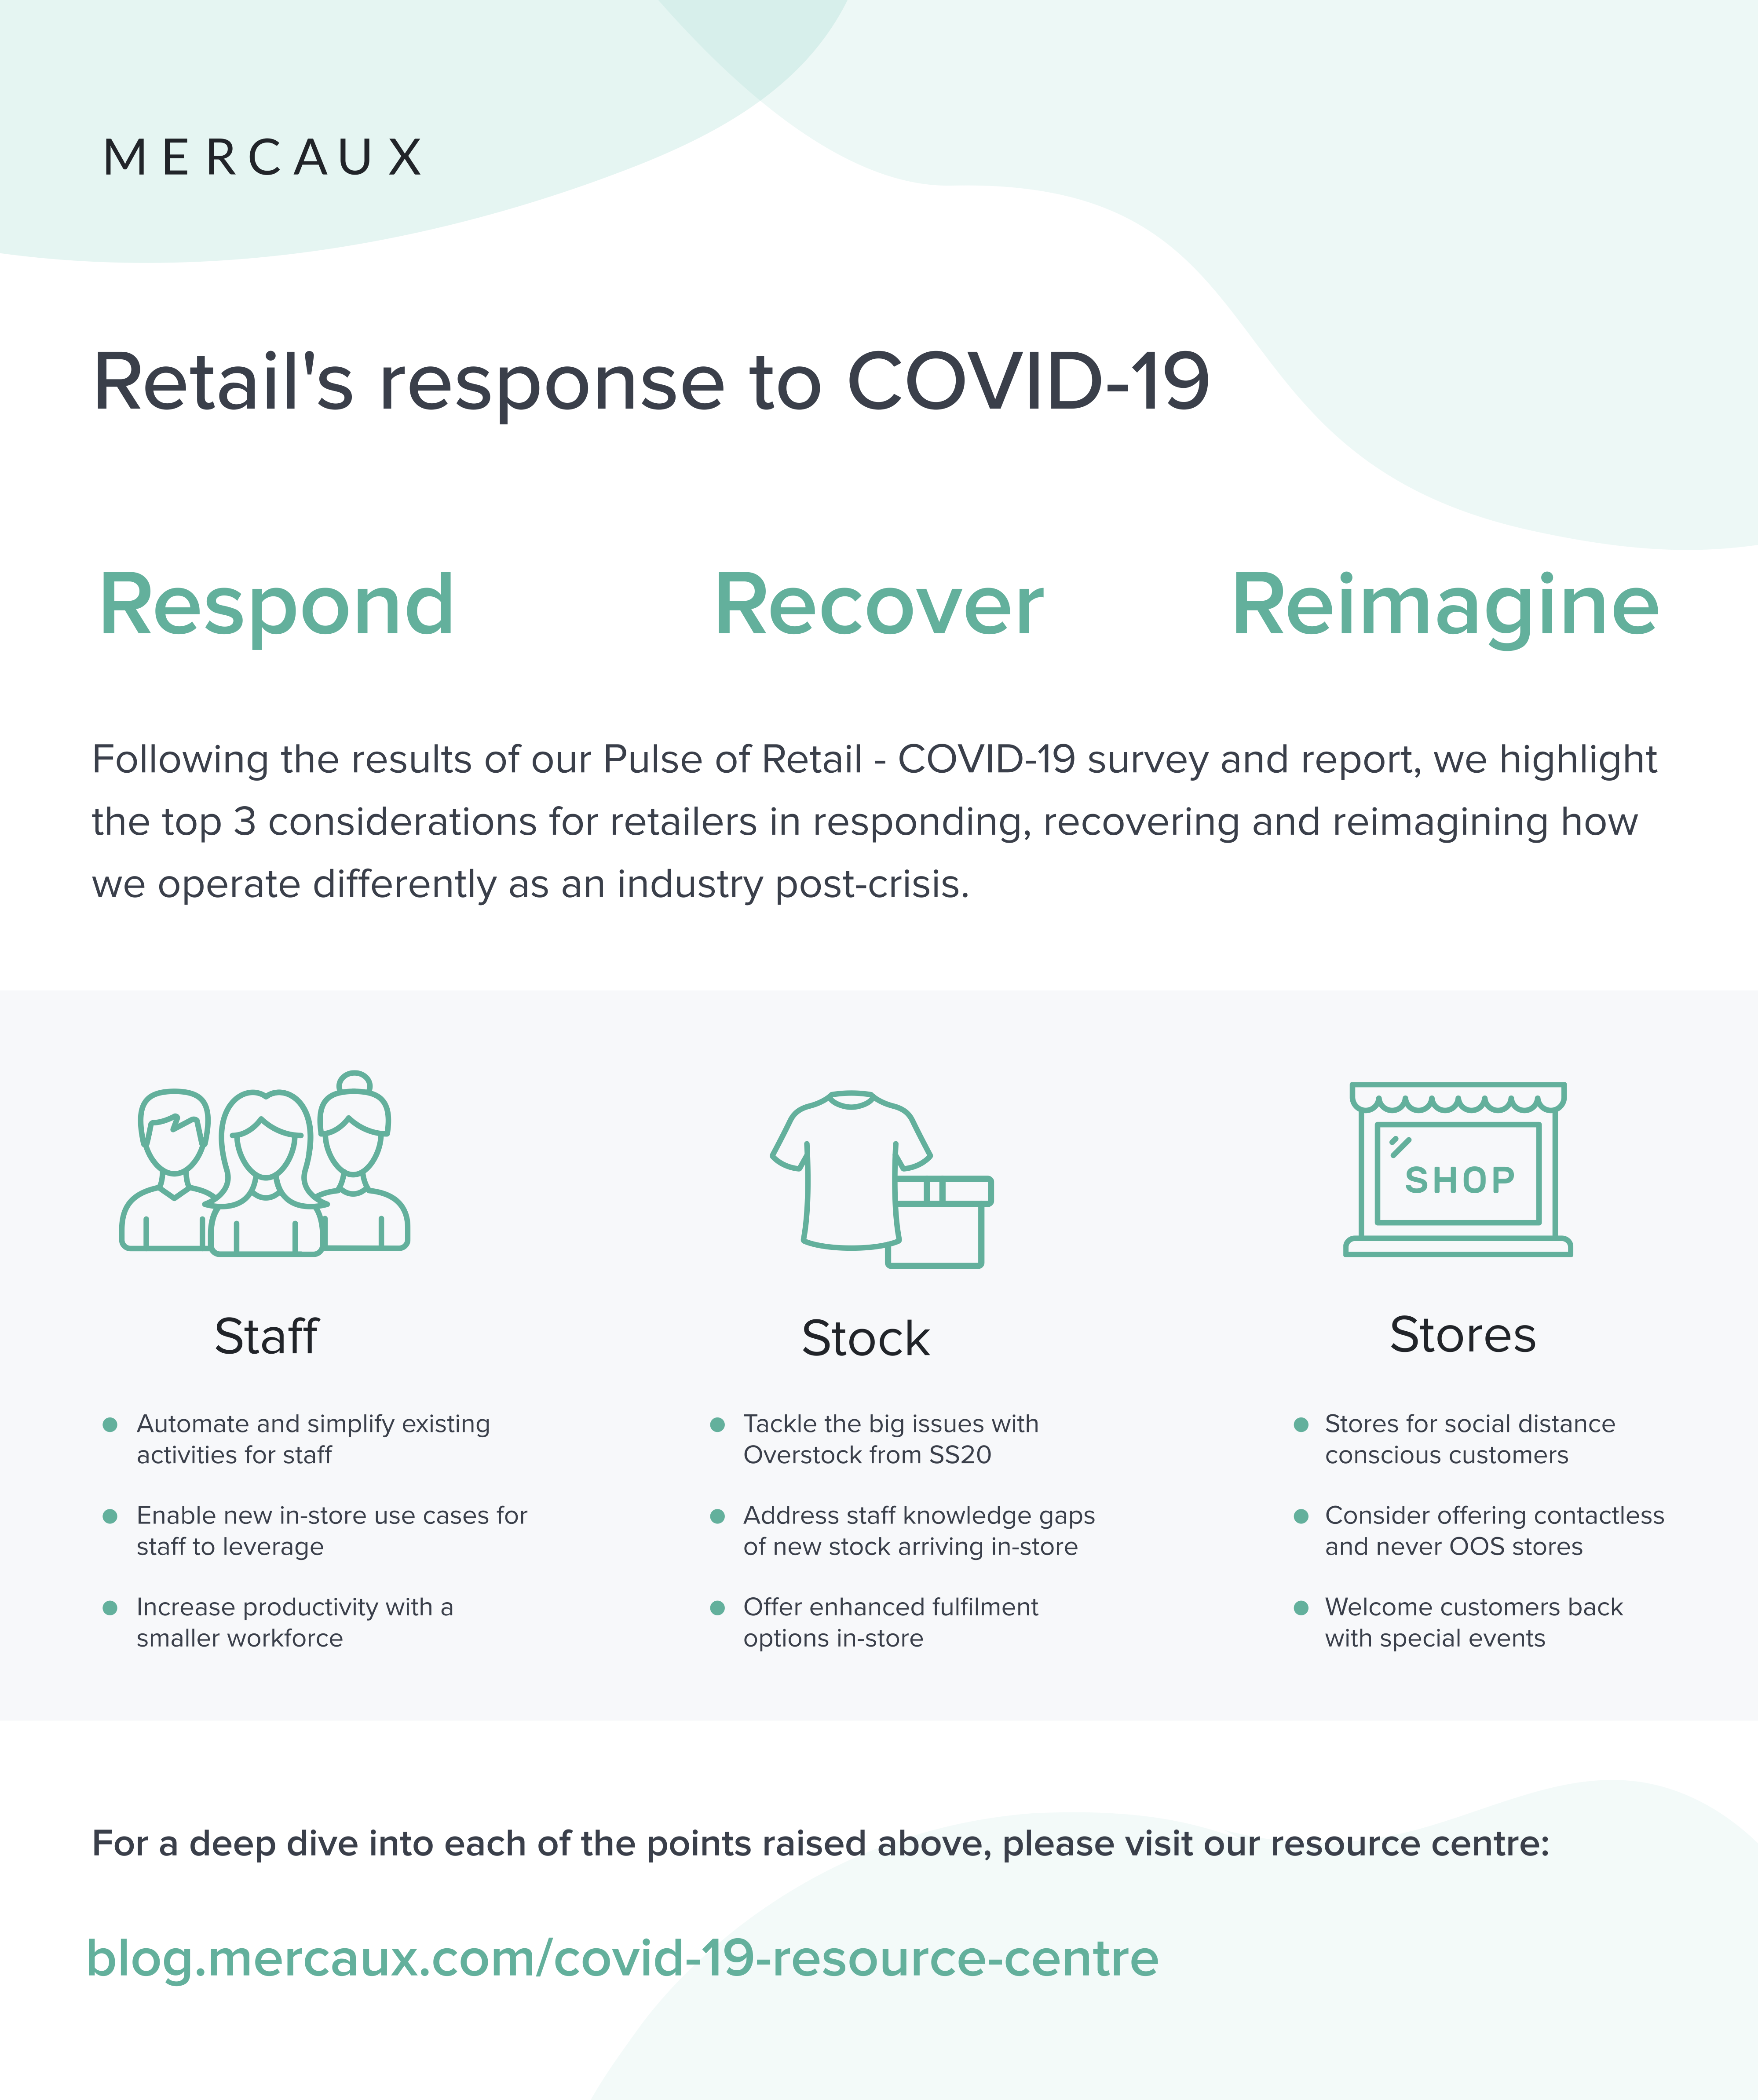 Mercaux - Retails Recovery from COVID-19 Executive Summary